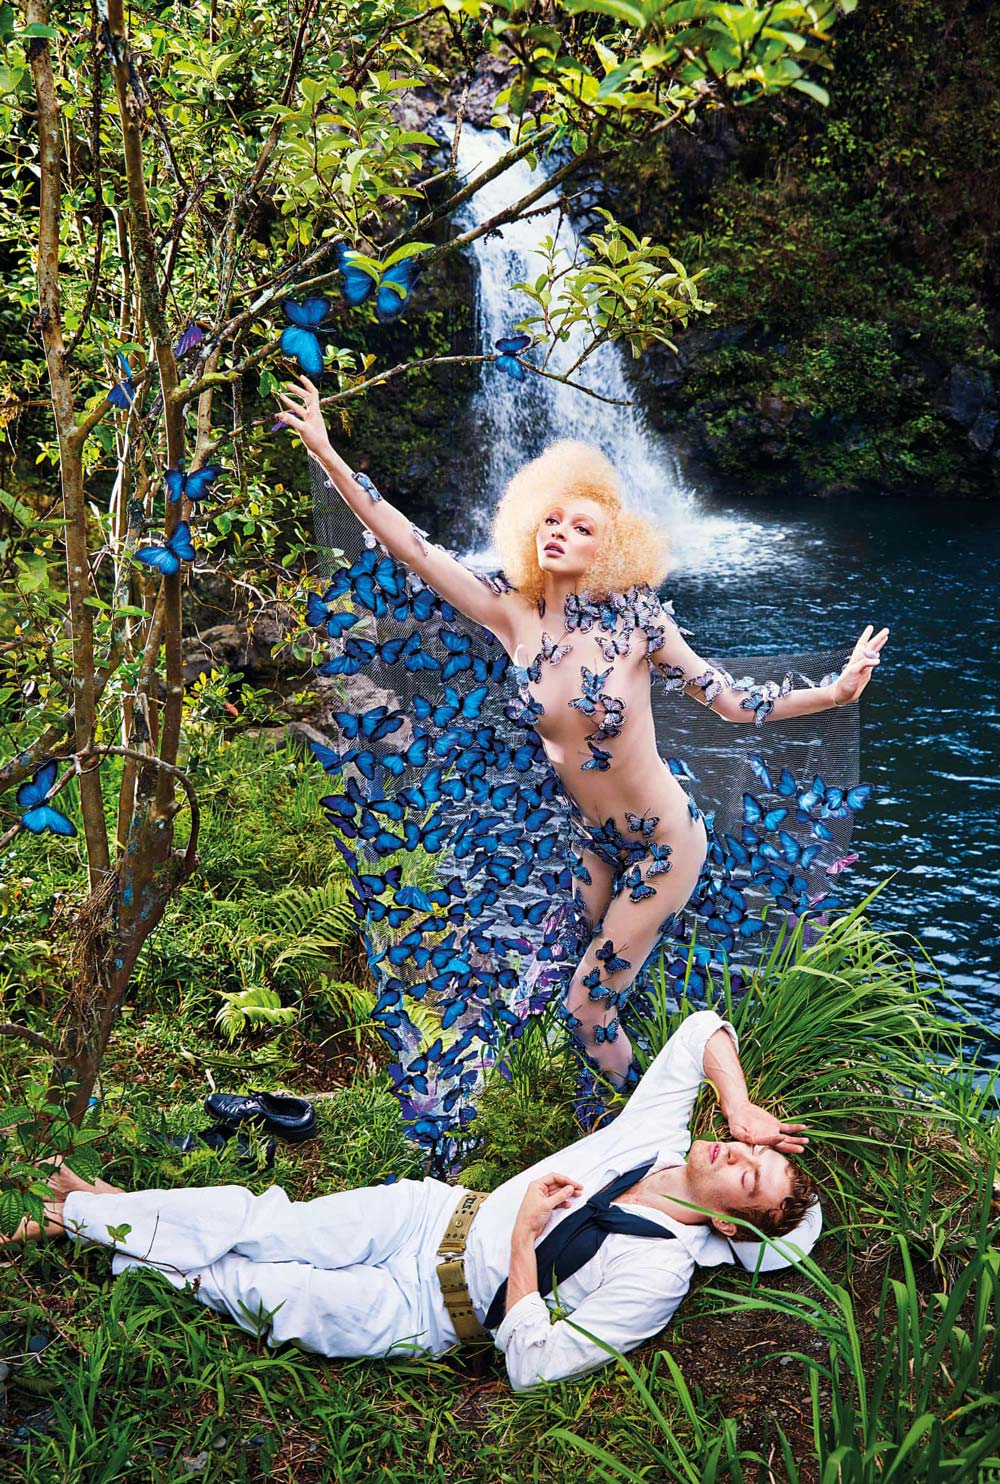 lavazza-x-david-lachapelle-2020-calendar-1